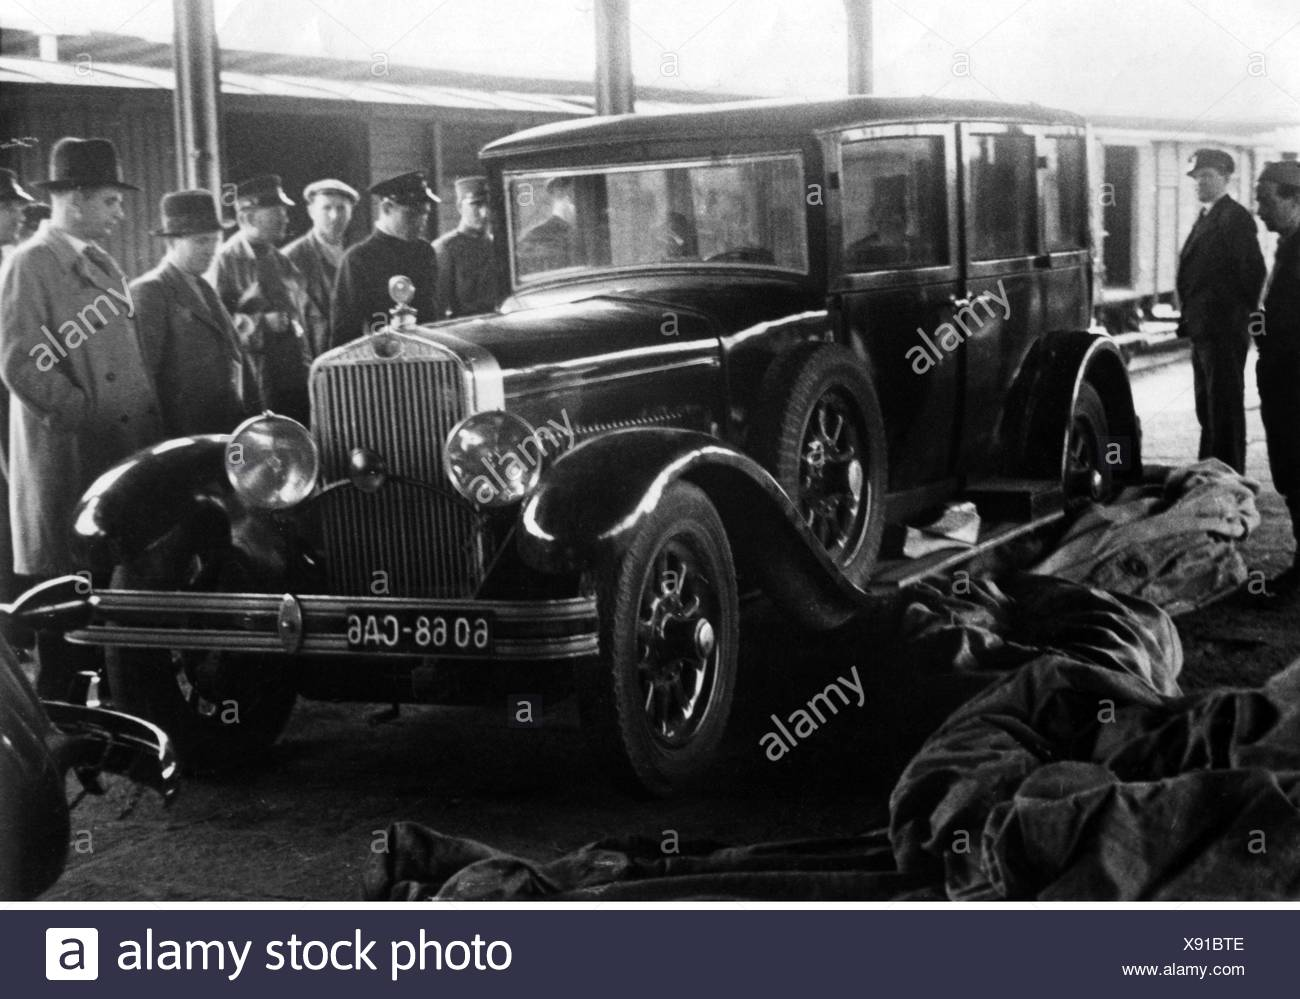 Alexander I, 17.12.1888 - 9.10.1934, King of Yugoslavia 16.8.1921 - 9.10.1934, car in which the king was murdered, railway station, Belgrade, 1930s, Additional-Rights-Clearances-NA - Stock Image